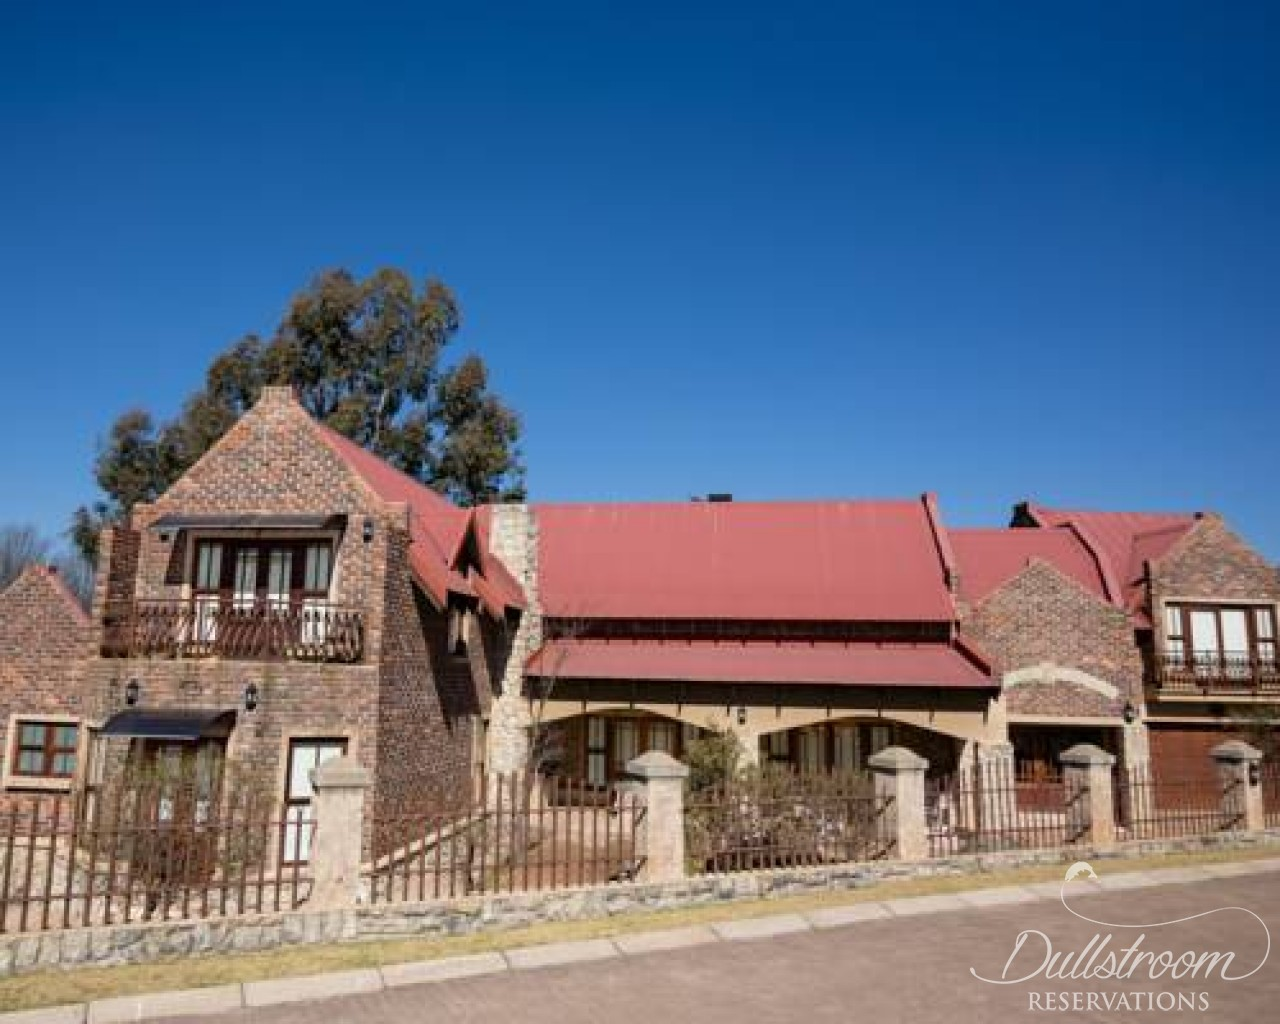 Windsor house accommodation in dullstroom dullstroom for Windsor house